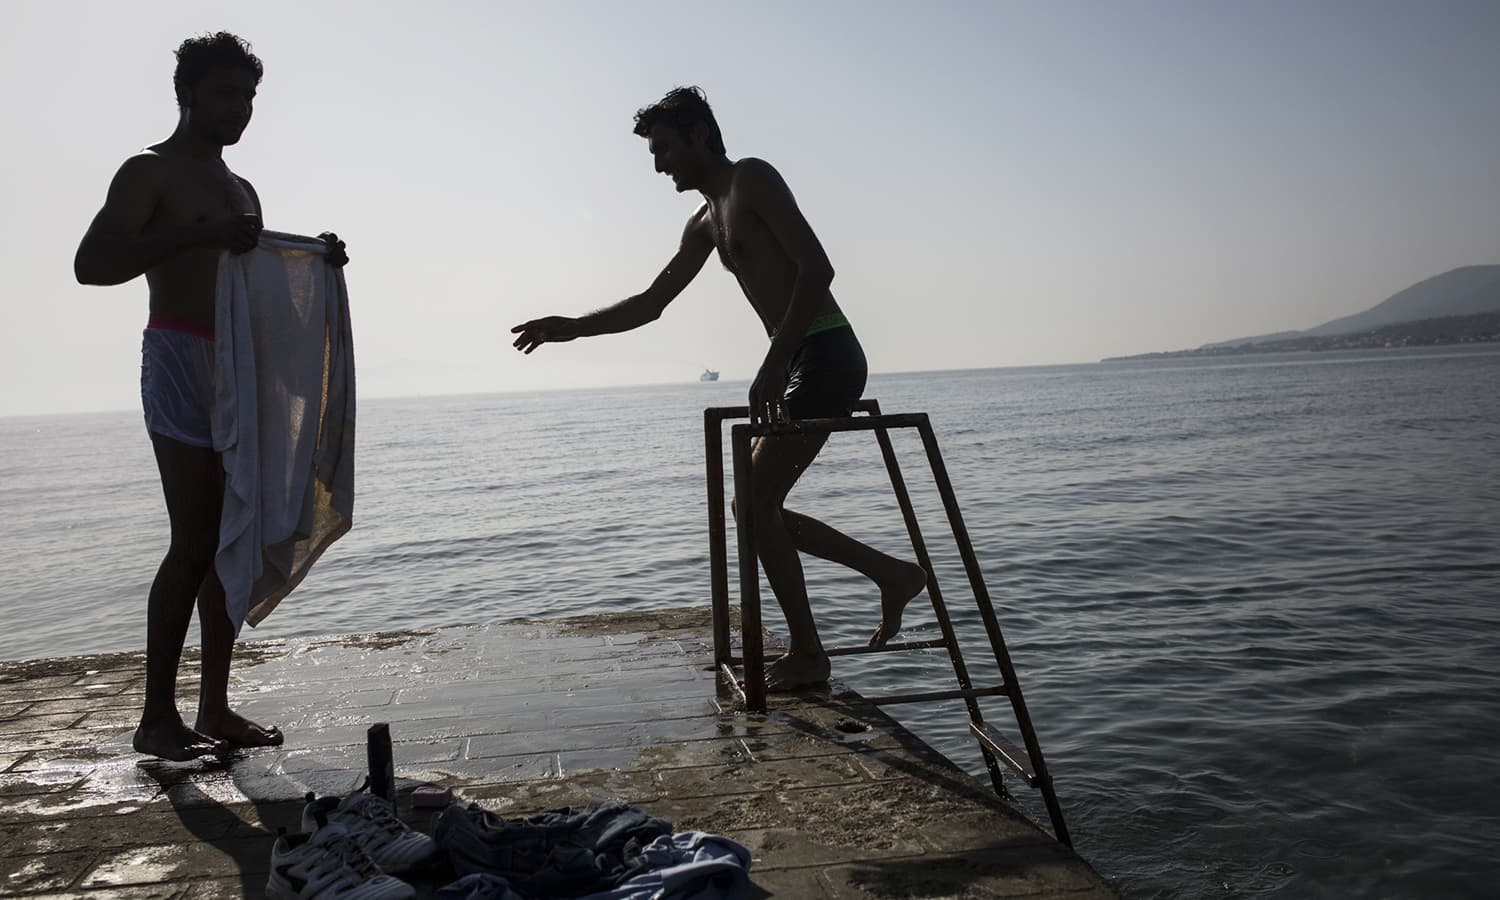 Young Pakistani men after taking a bath in the sea on the island of Lesbos, where hundreds of Pakistanis have been stranded since the Balkan route was closed down at the Greek Macedonian border, at which time Greek authorities decided to prevent migrants from traveling to the mainland, which is already overflowing with migrants.